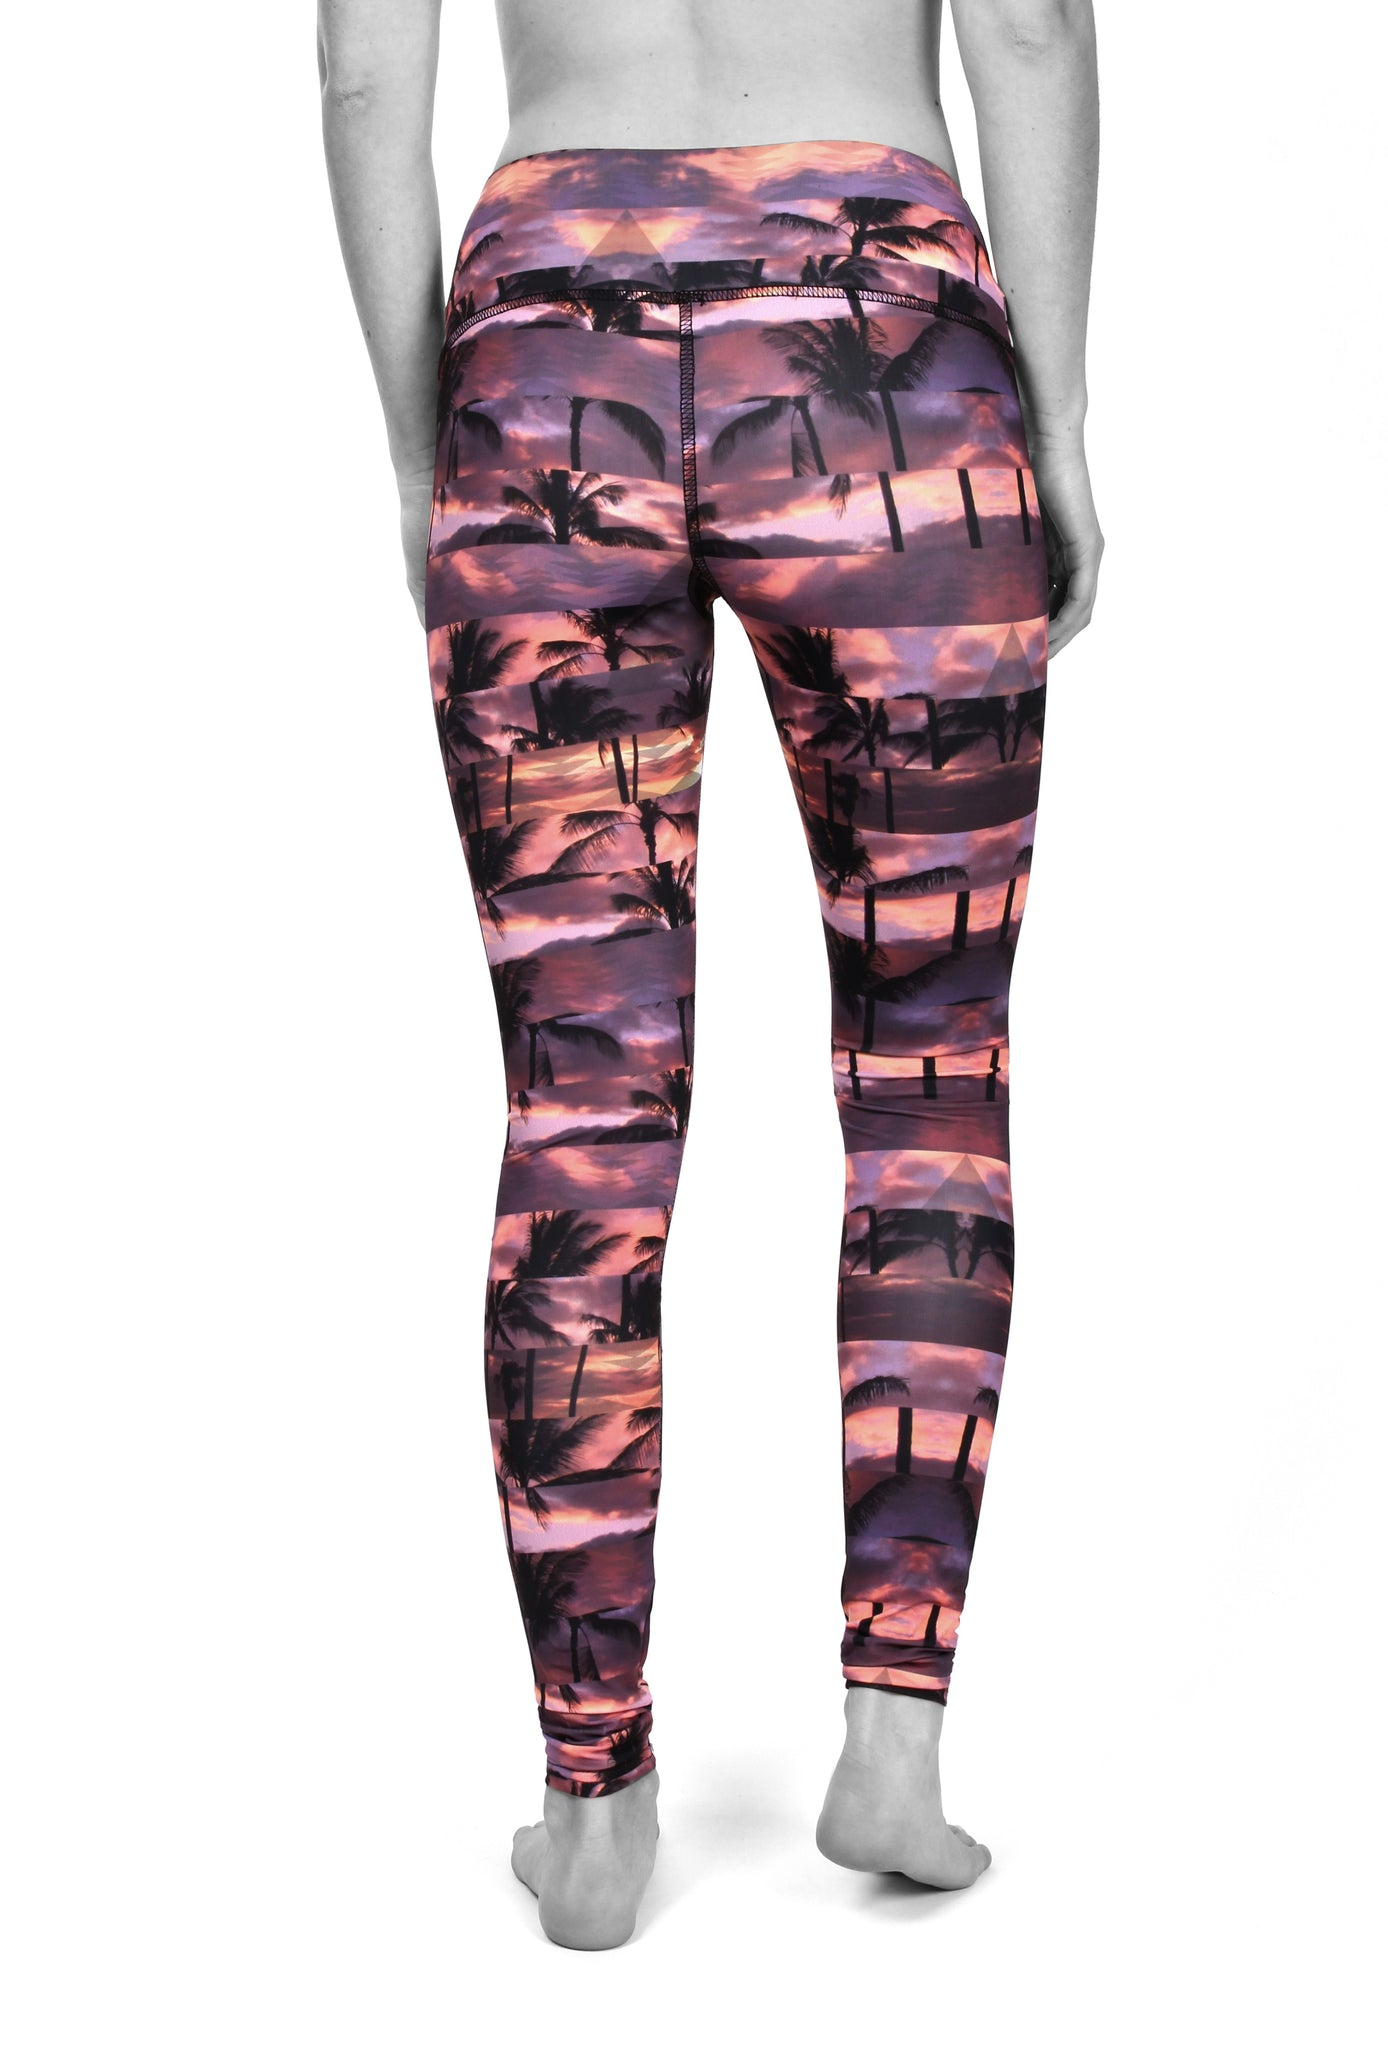 Tropical prism legging